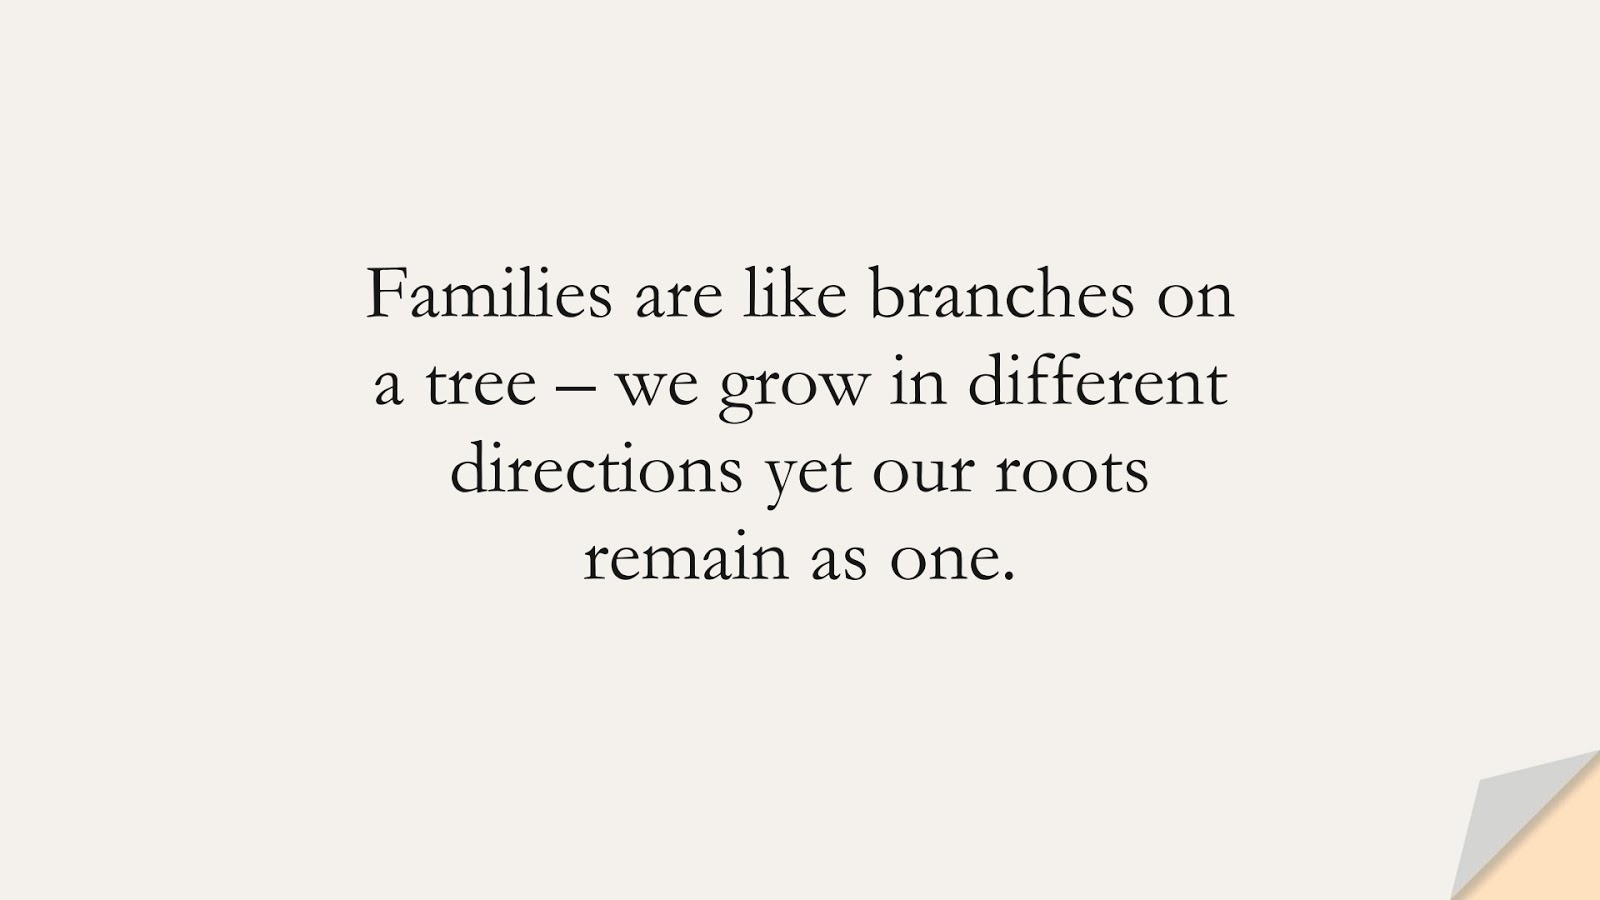 Families are like branches on a tree – we grow in different directions yet our roots remain as one.FALSE